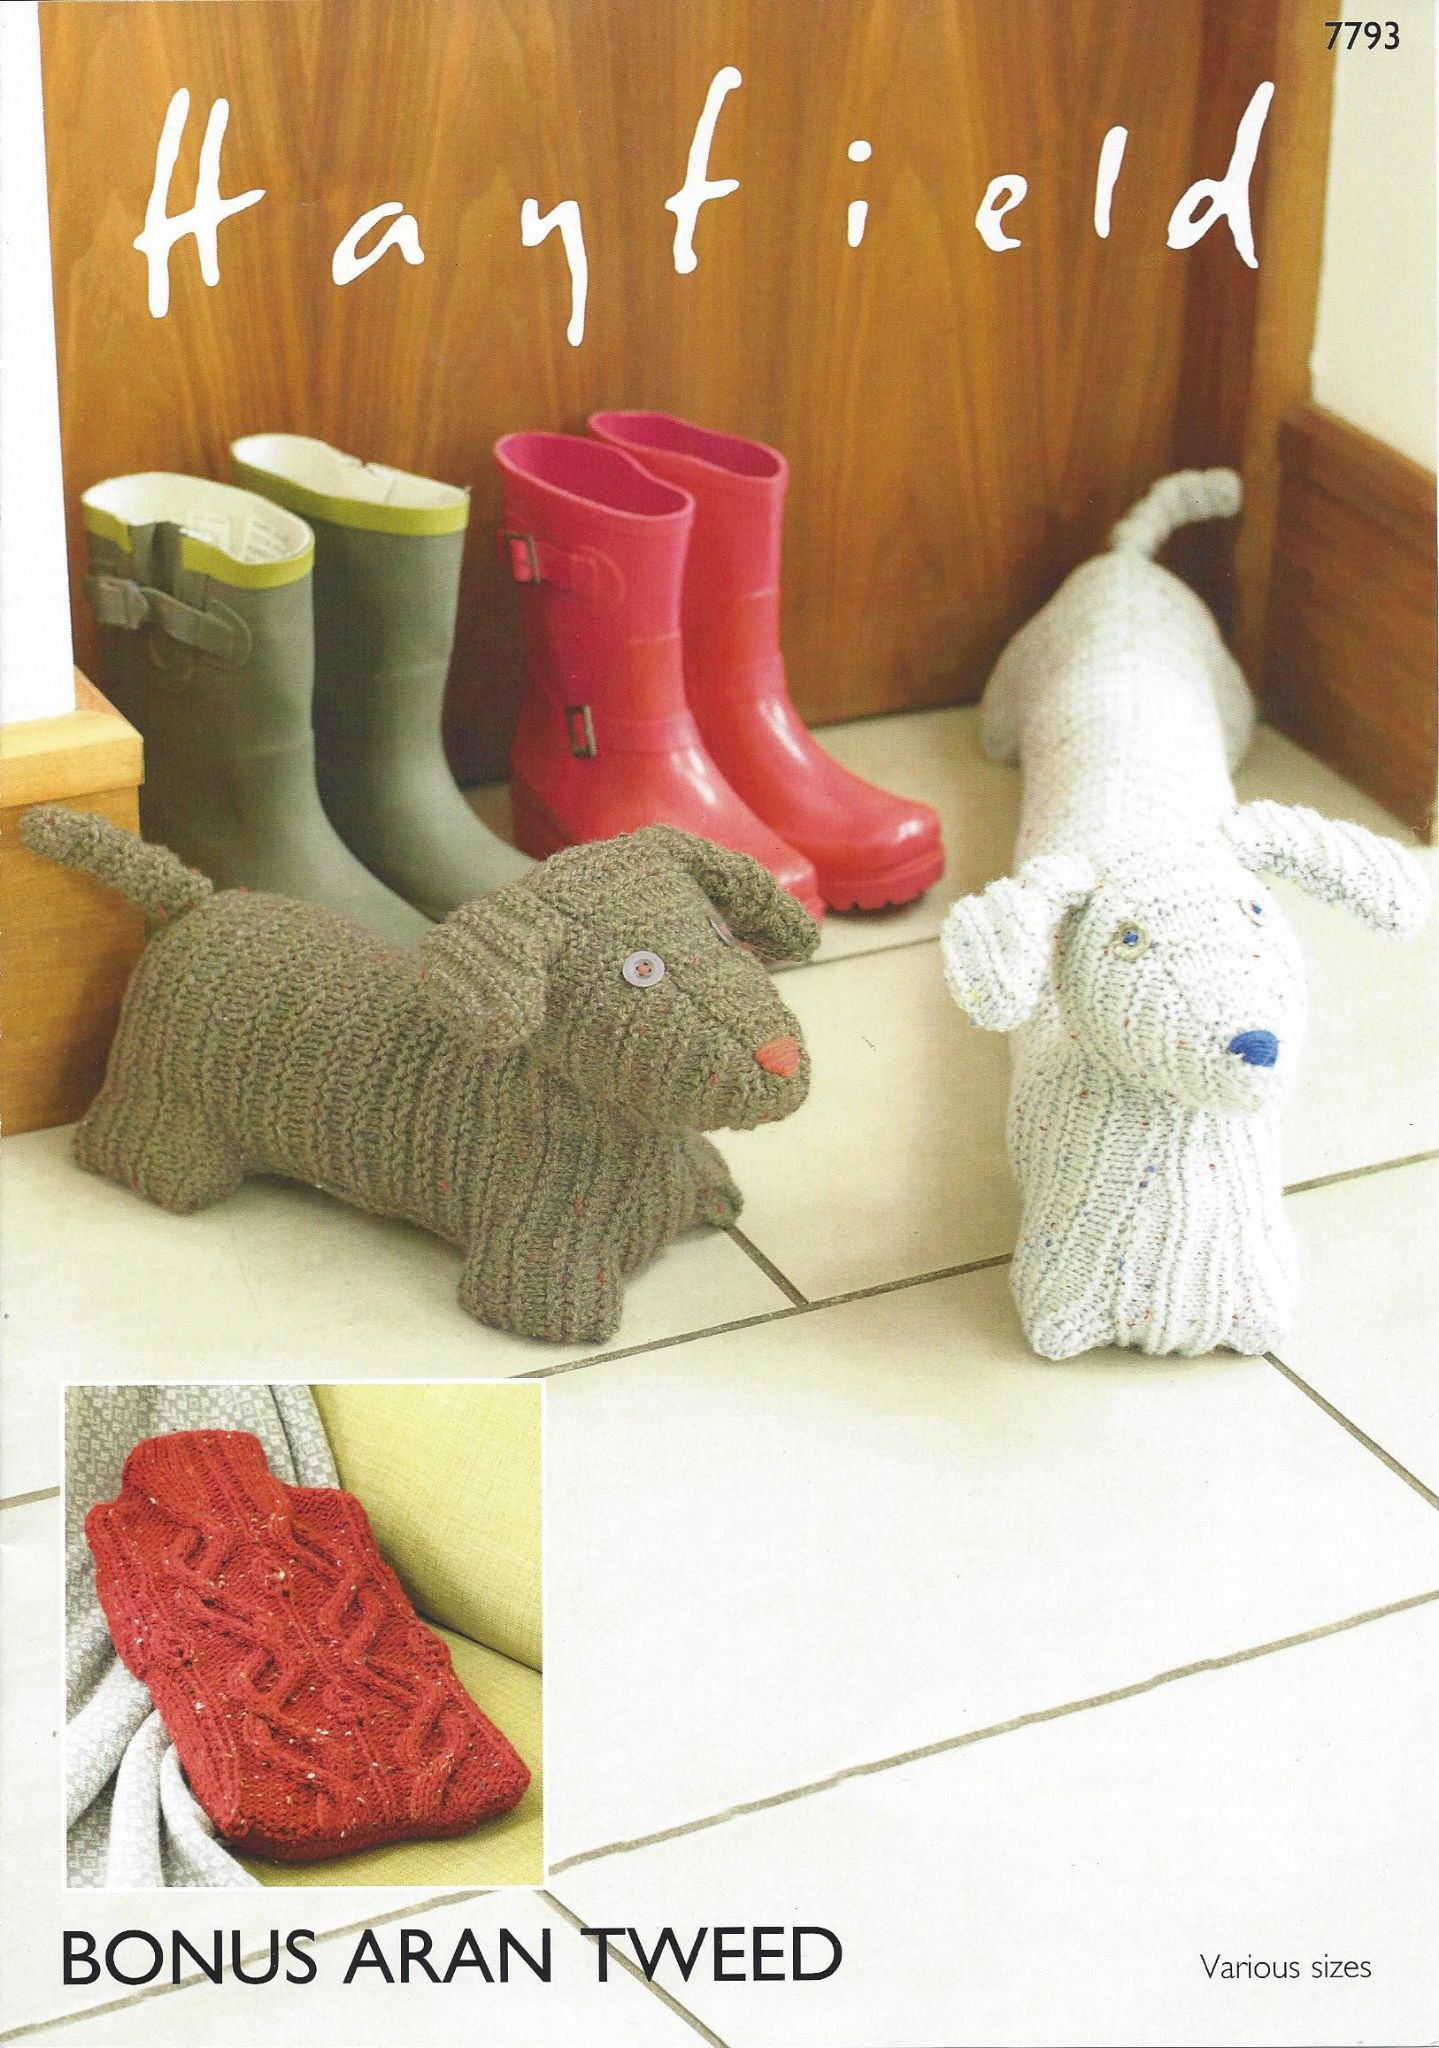 Hayfield Bonus Aran Tweed 7793 Hot Water Bottle Cover Doggy Door